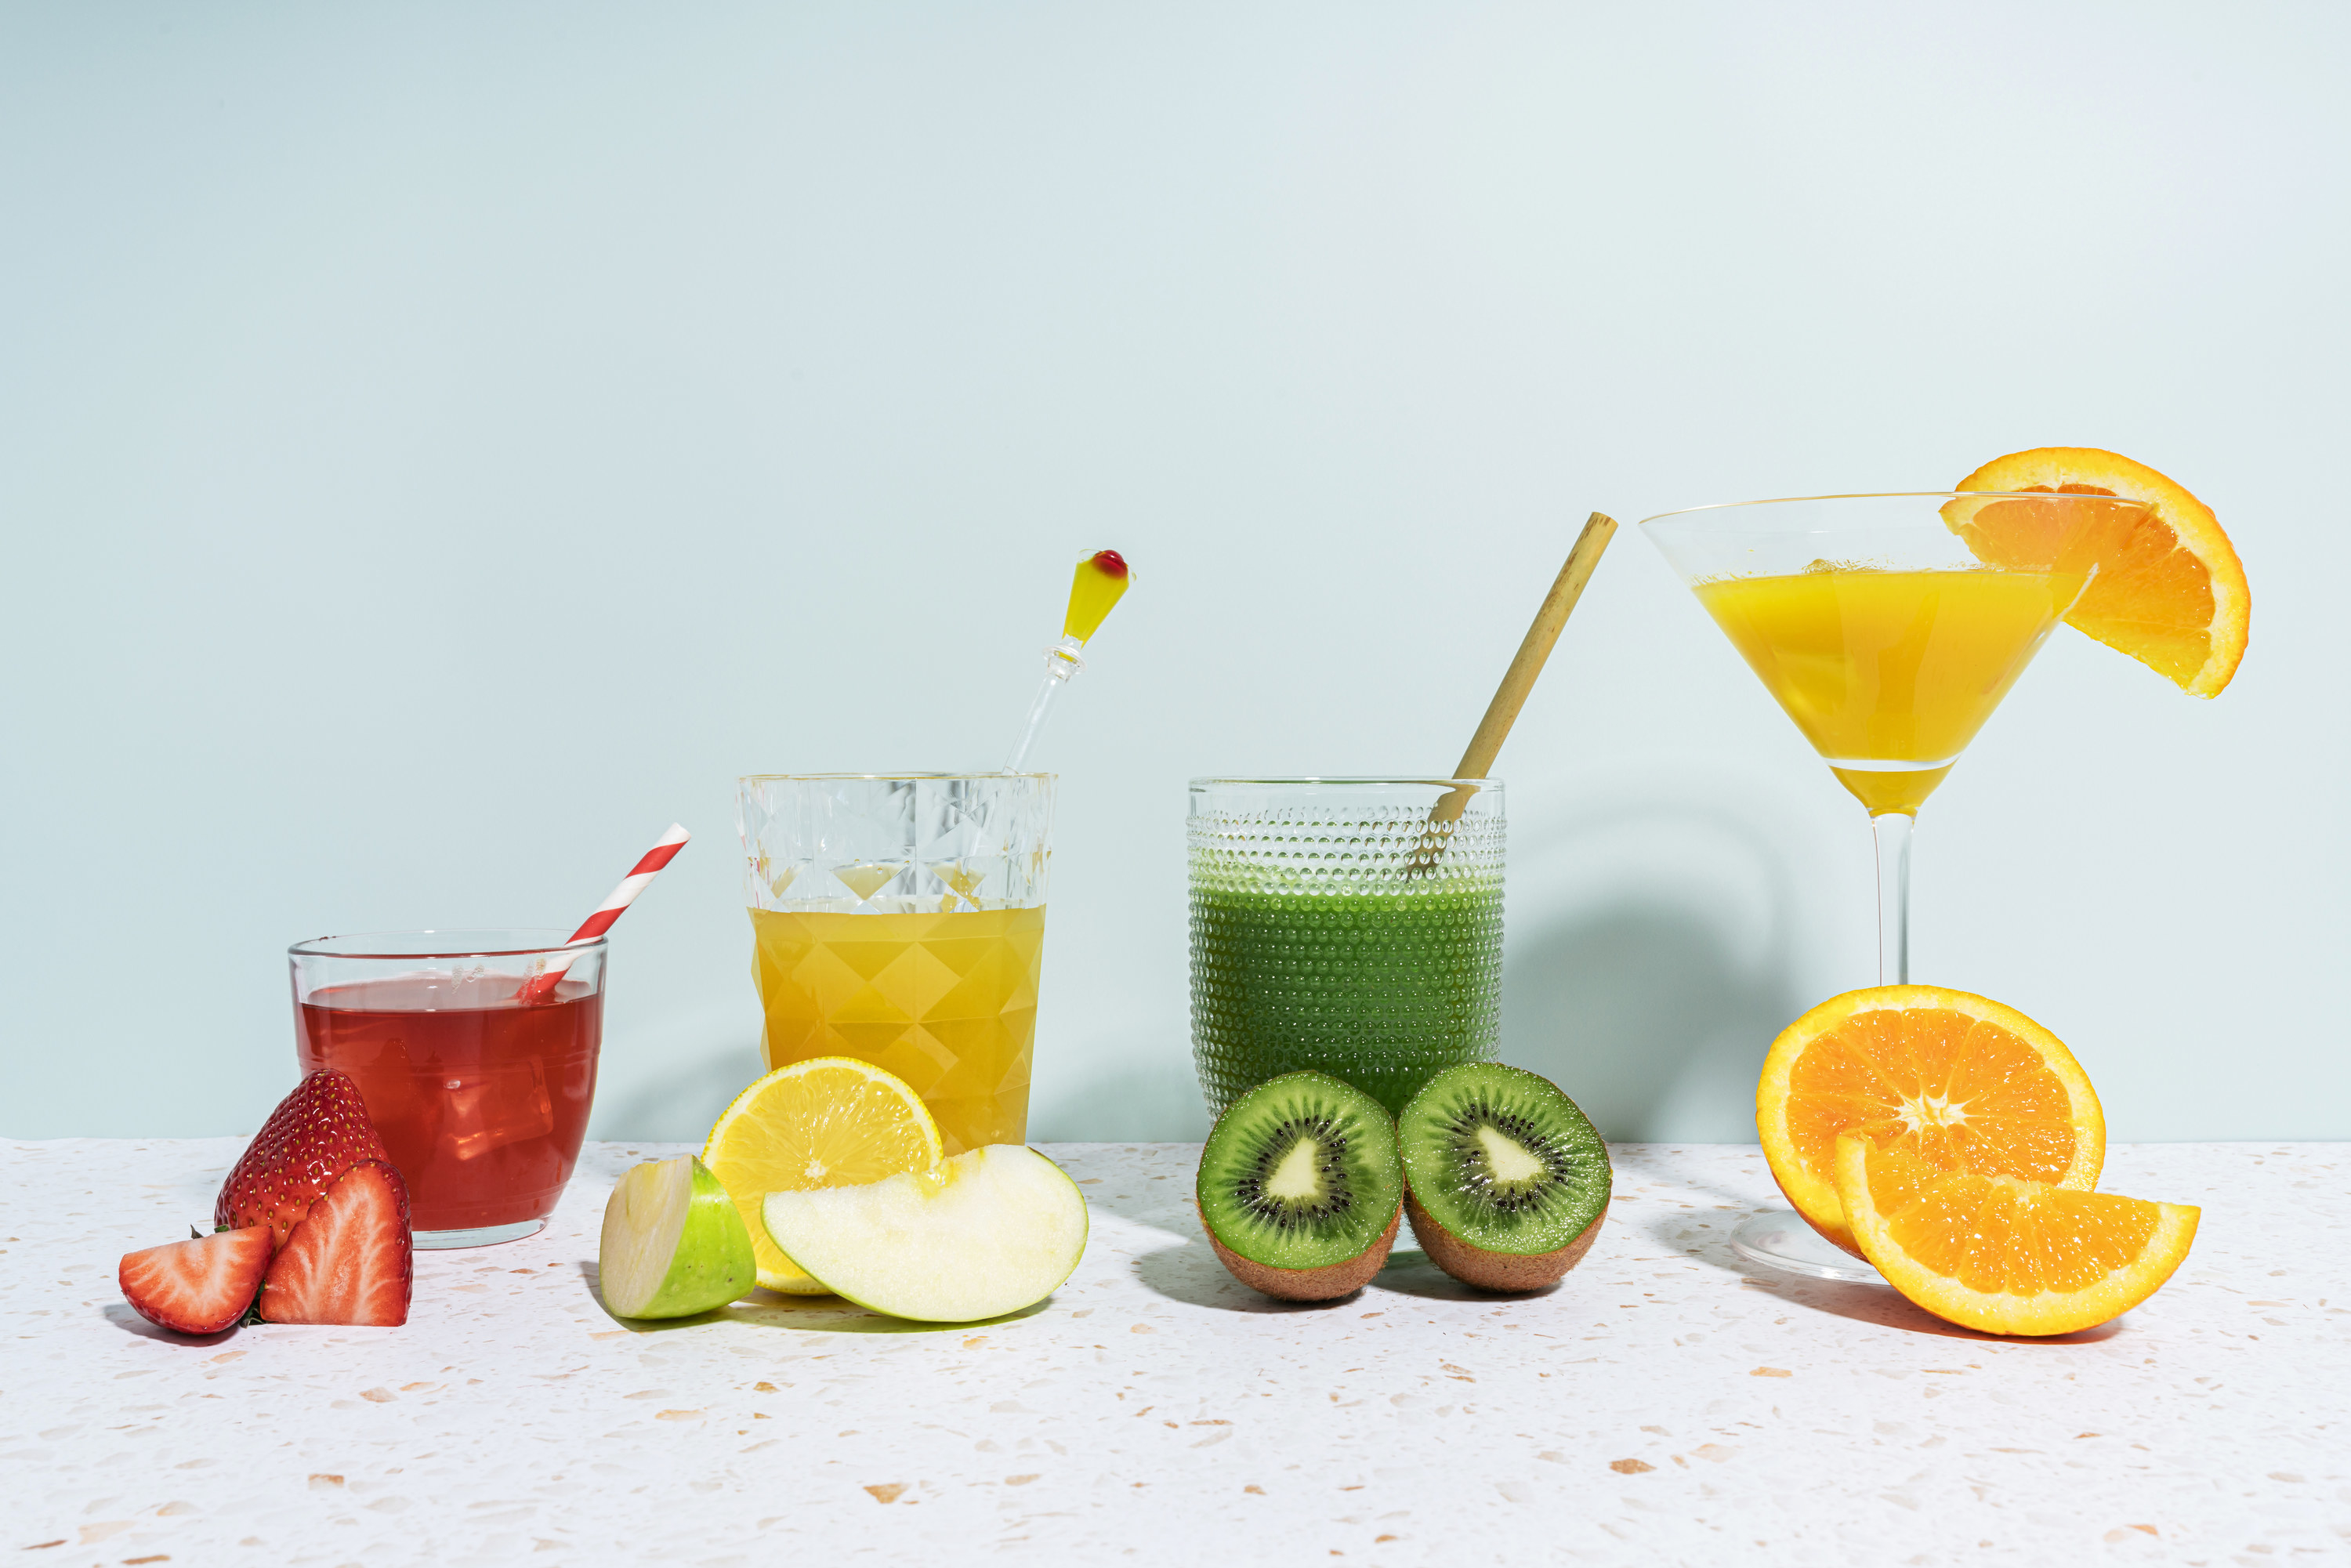 A variety of colorful cocktails